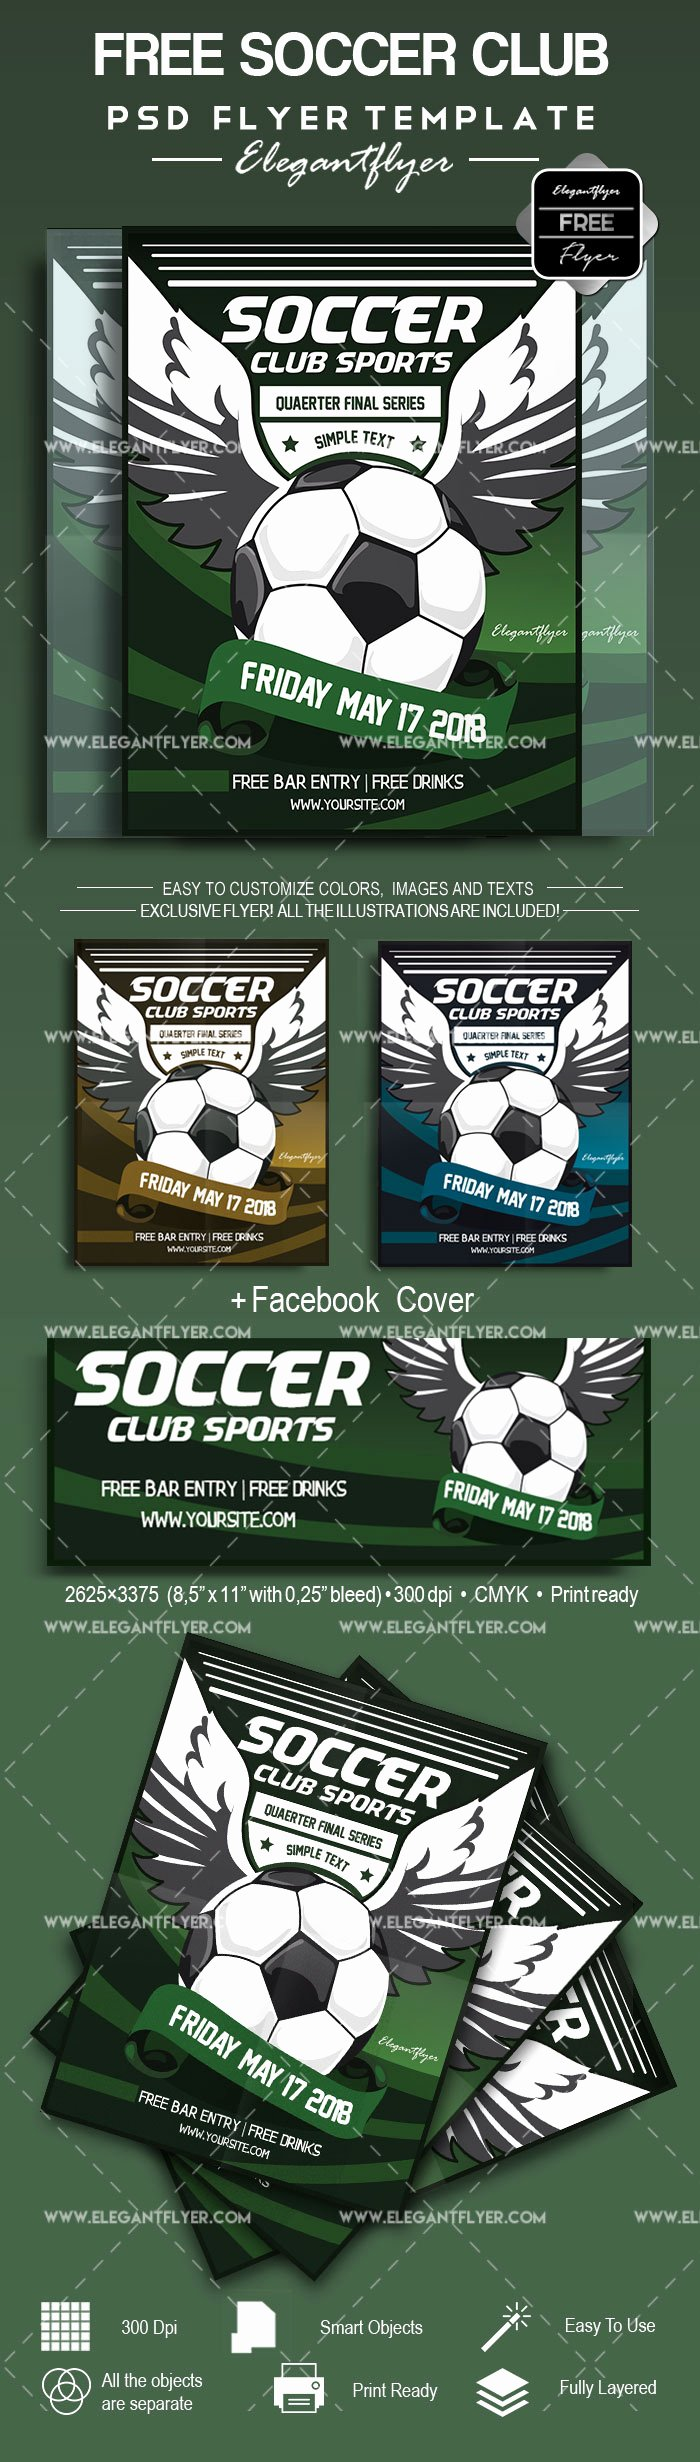 Soccer Flyer Template Free Inspirational soccer – Free Flyer Psd Template – by Elegantflyer